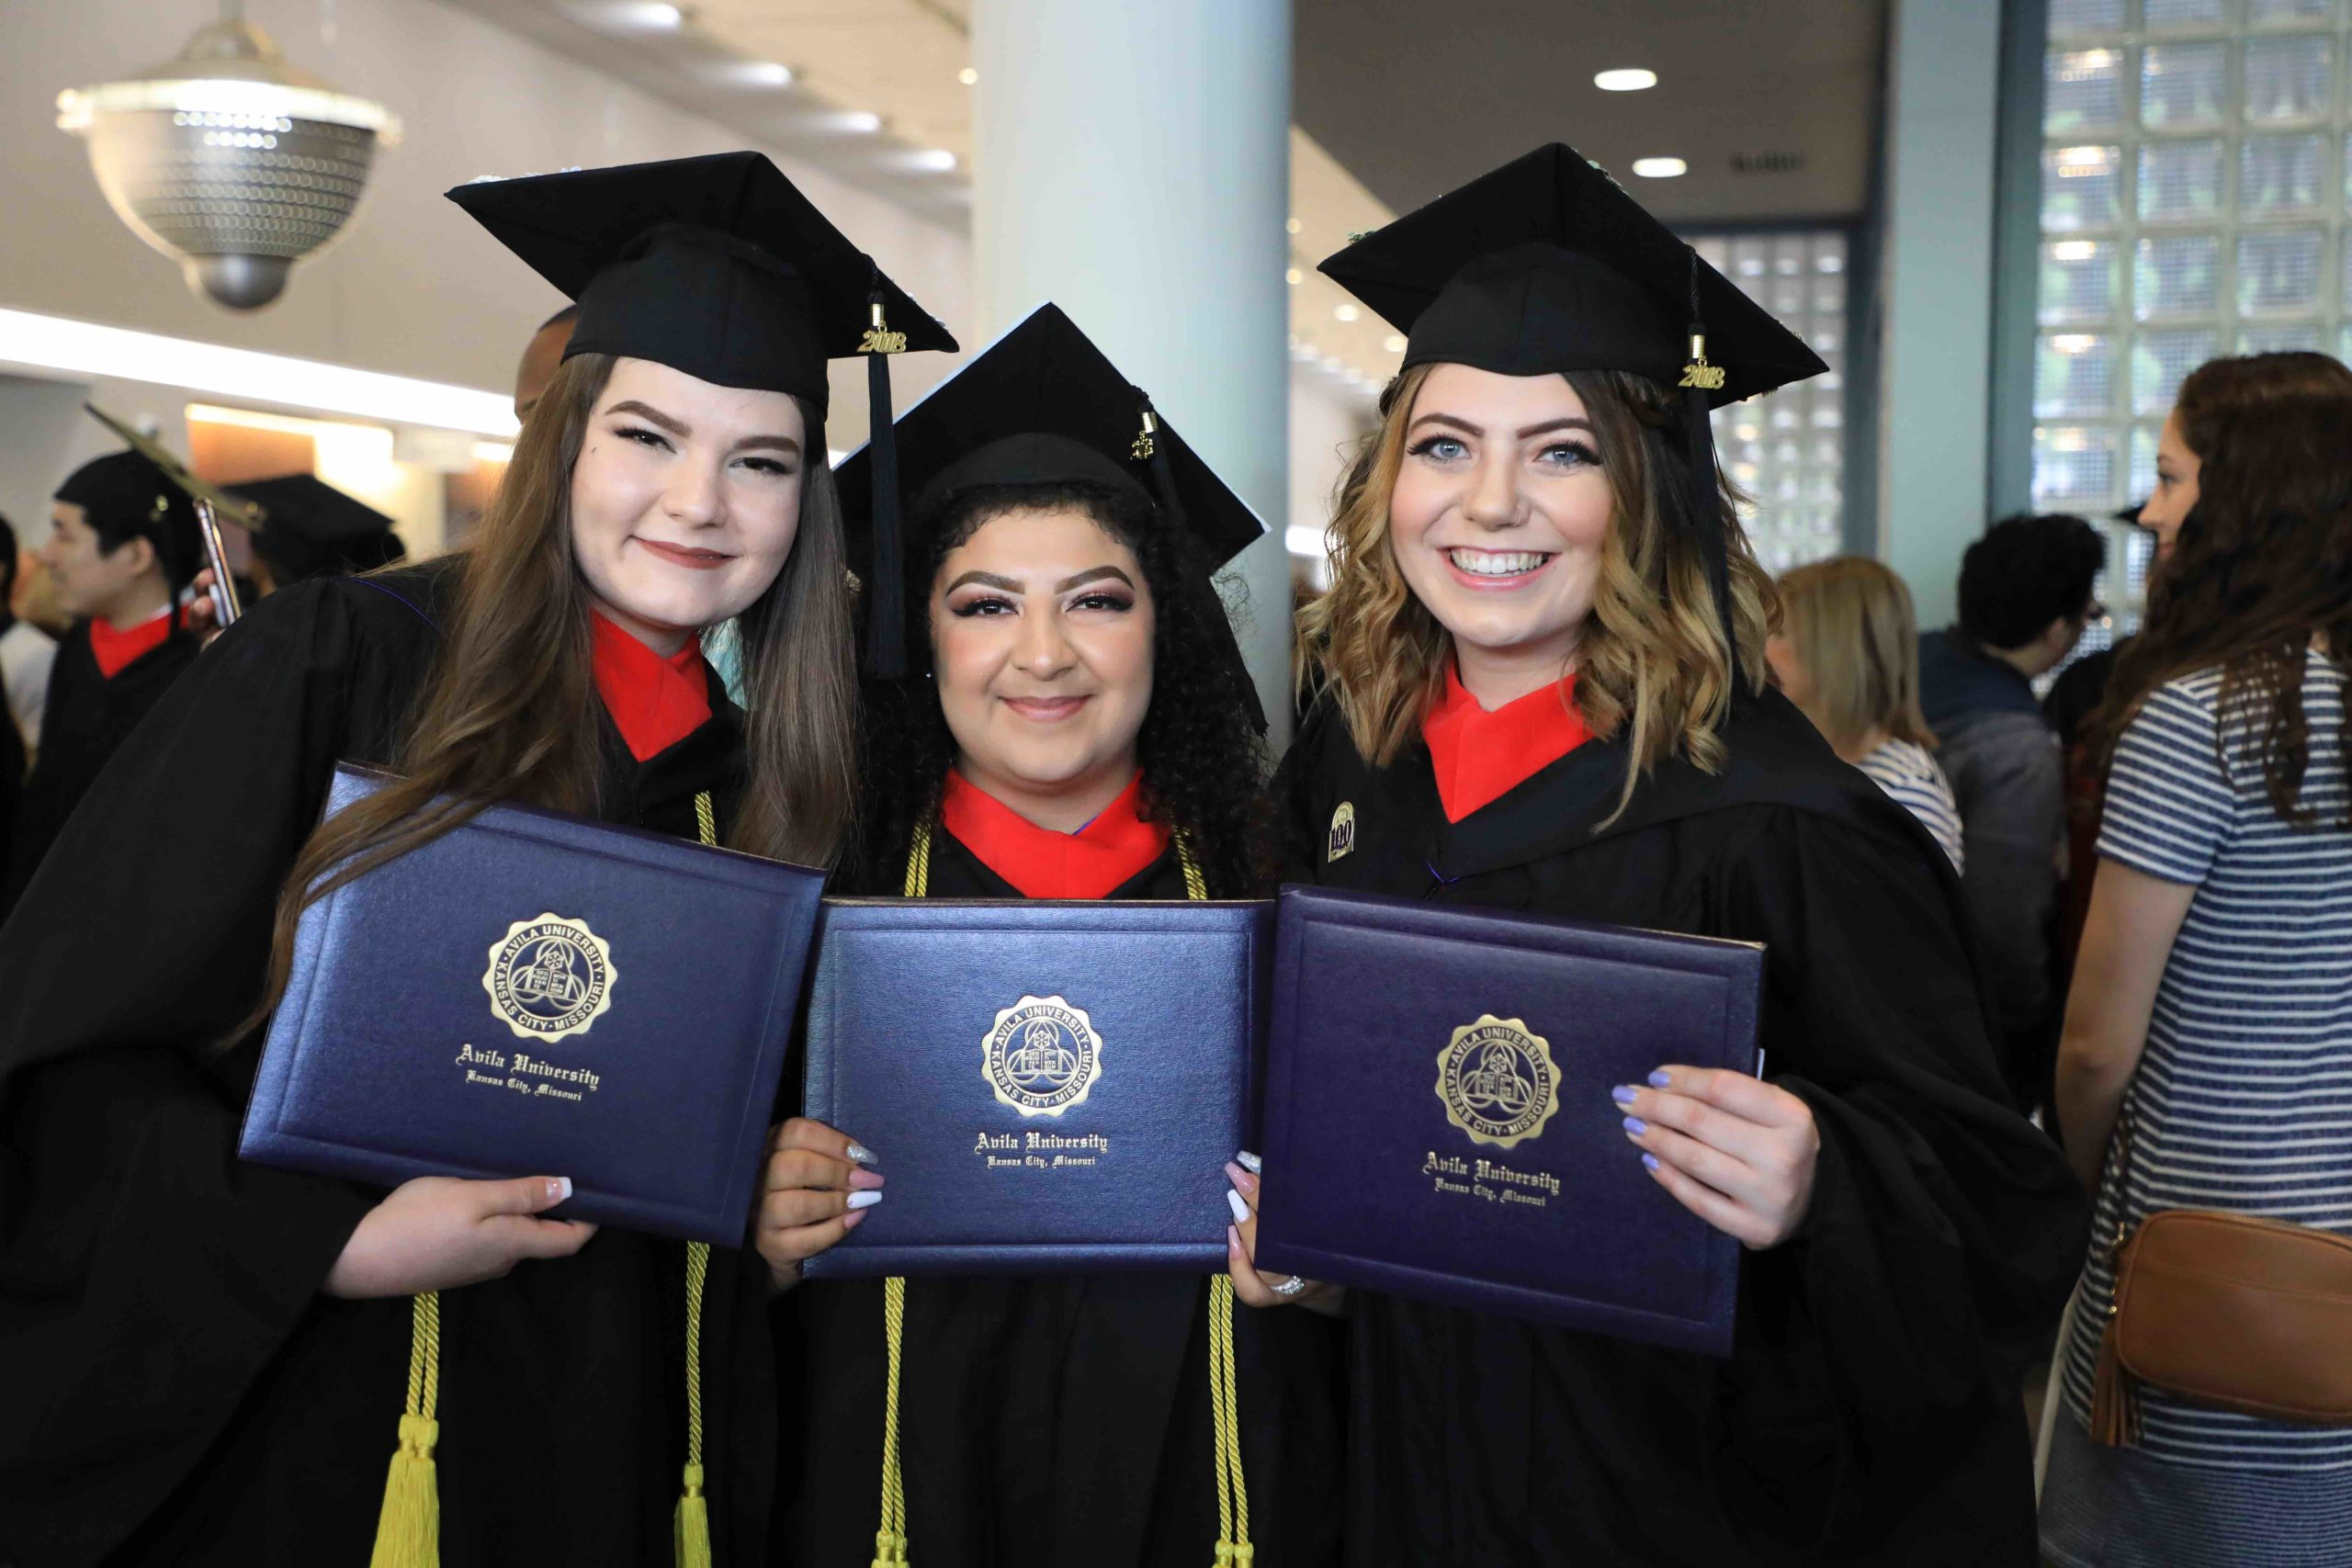 A group of three women posing with the diplomas at graduation in their caps and gowns